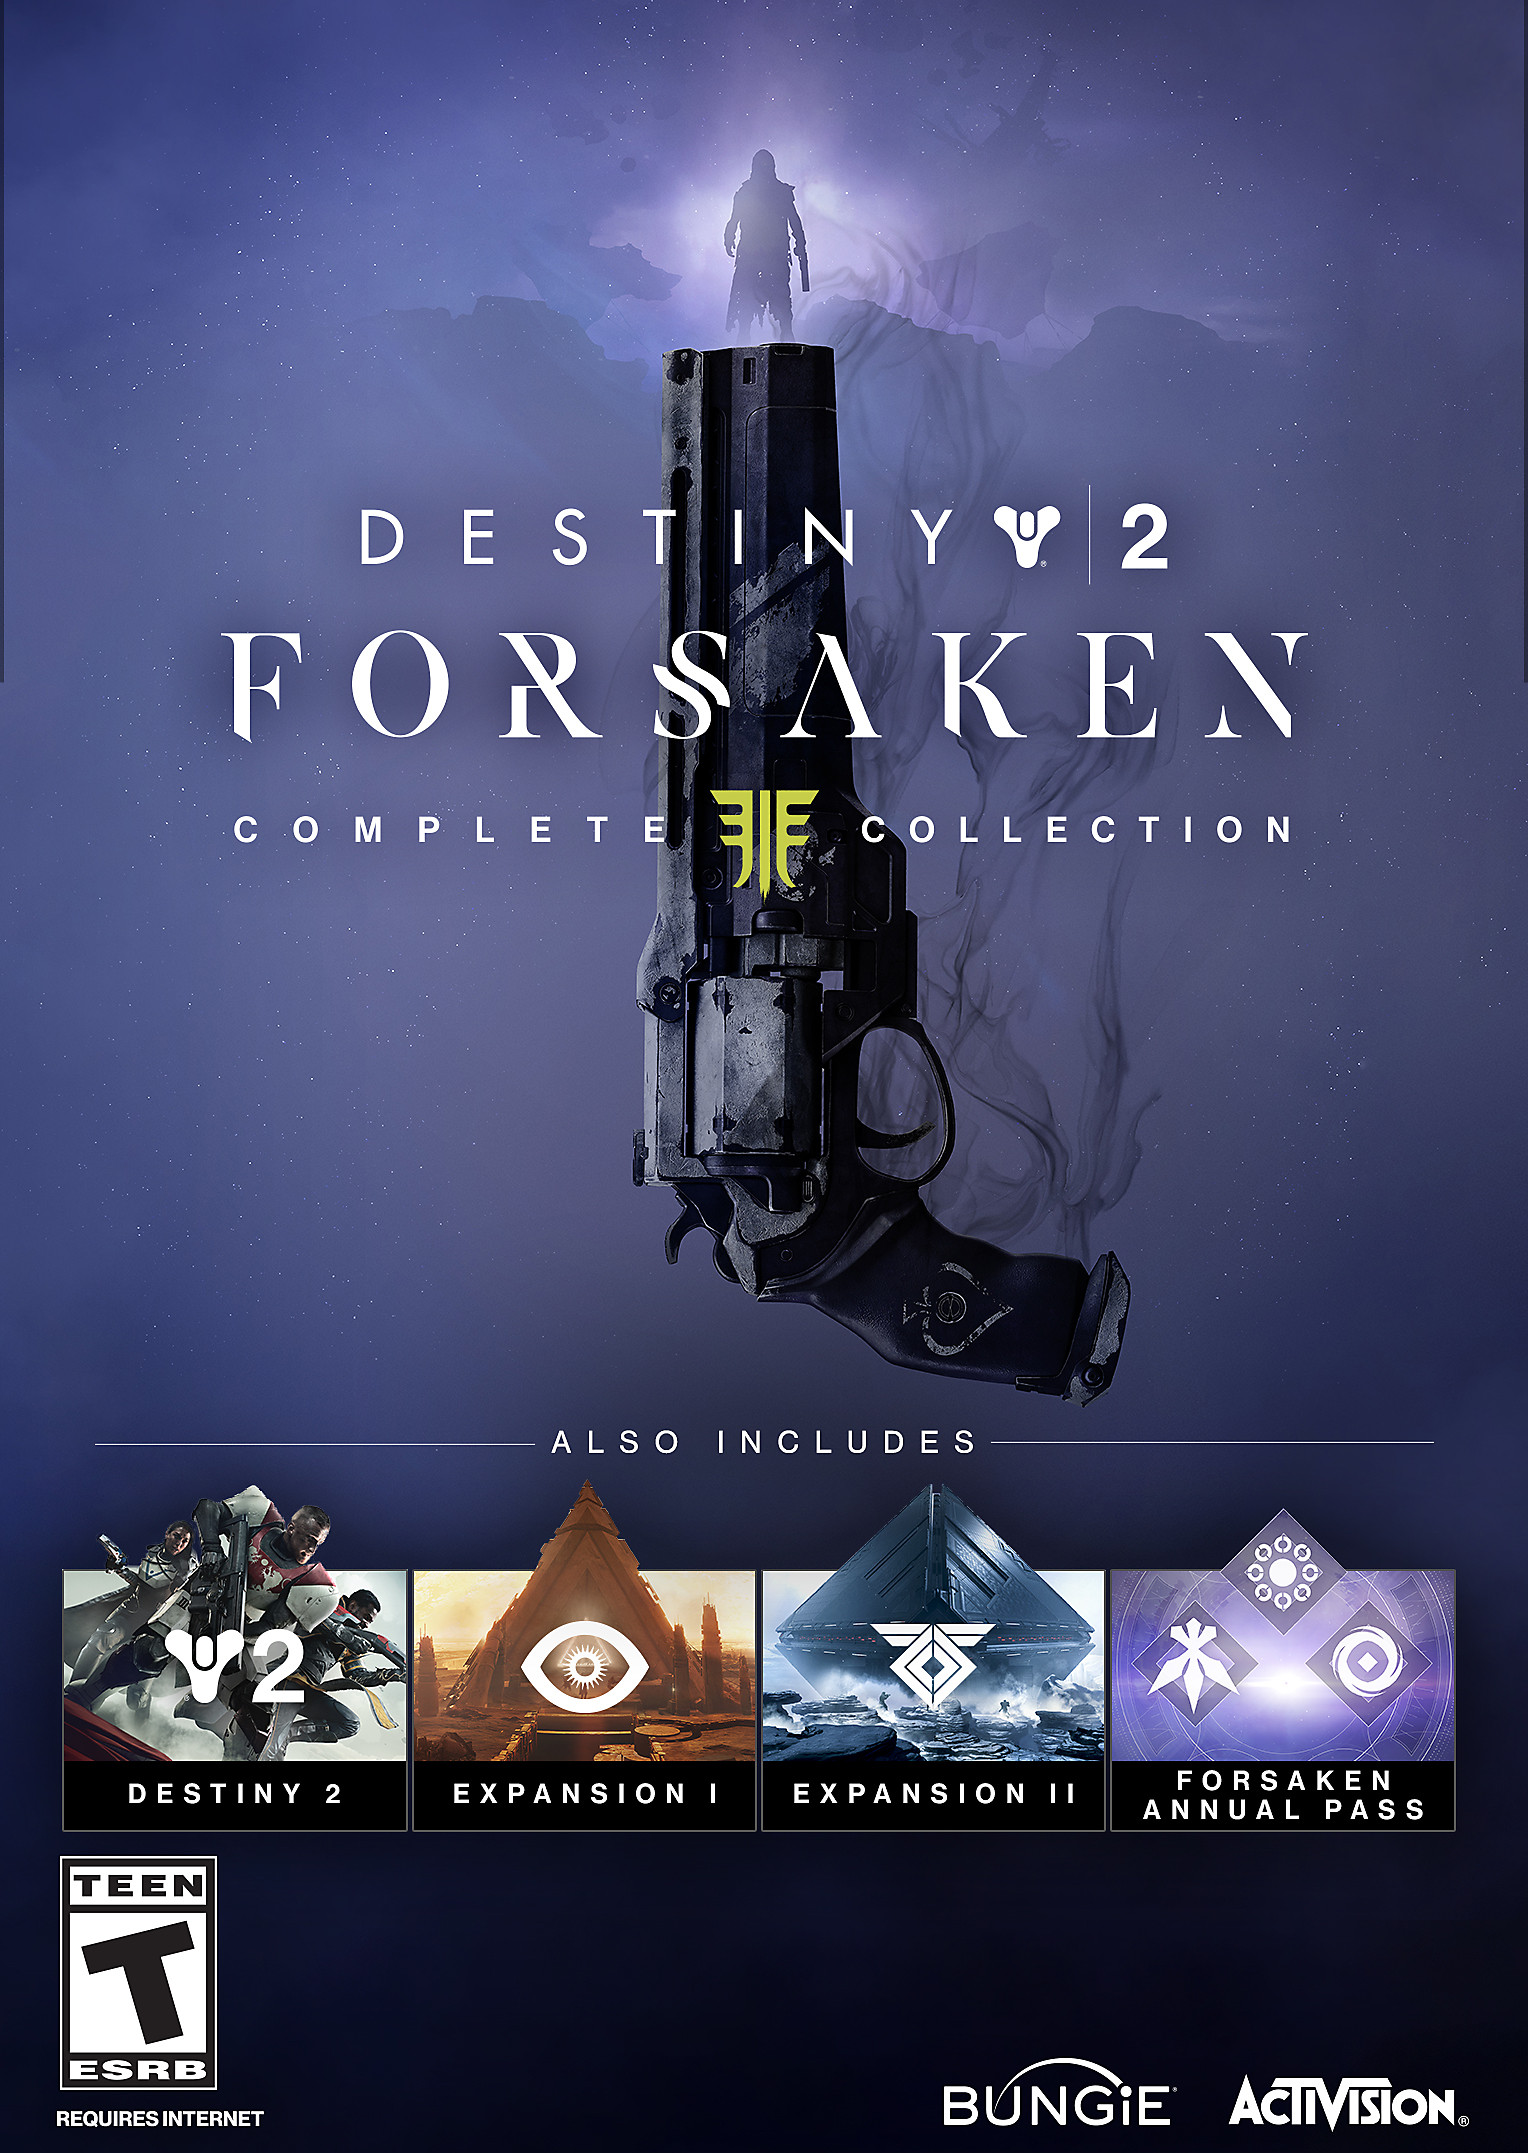 Destiny 2 Forsaken Complete Collection Art